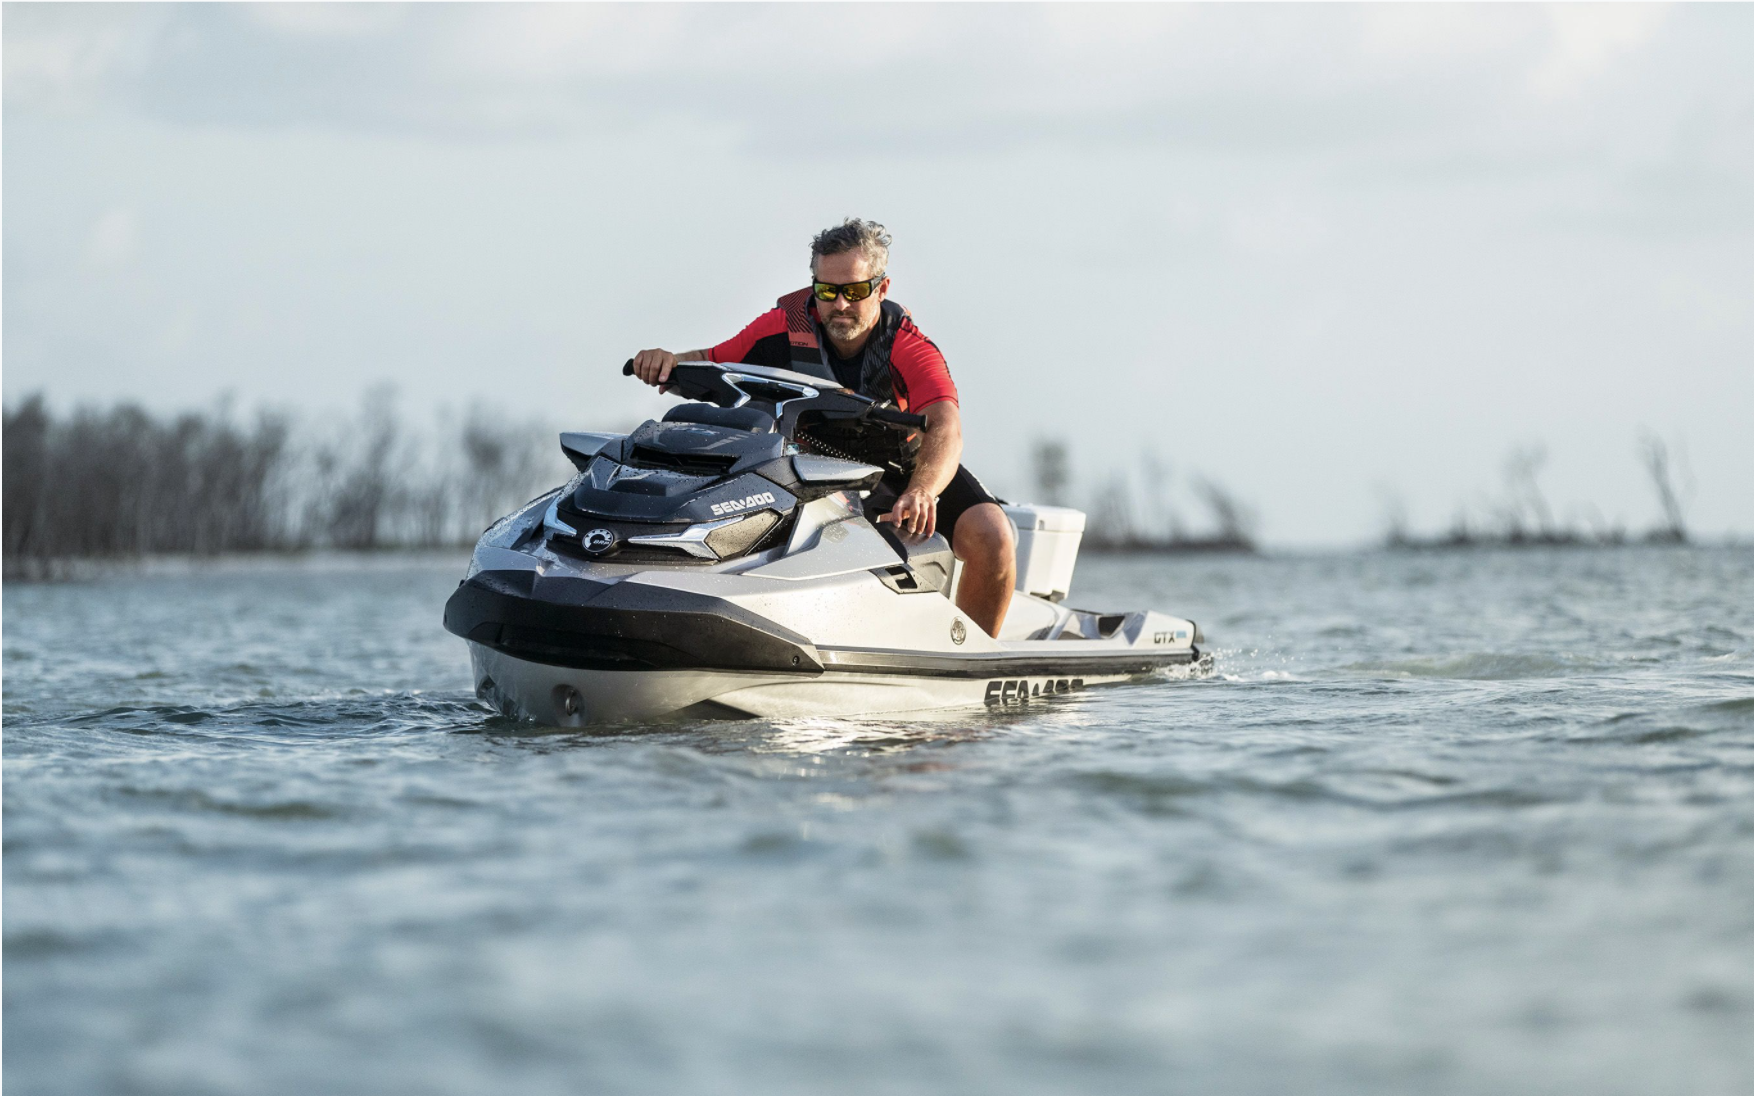 THE 2021 SEA-DOO GTX FAMILY